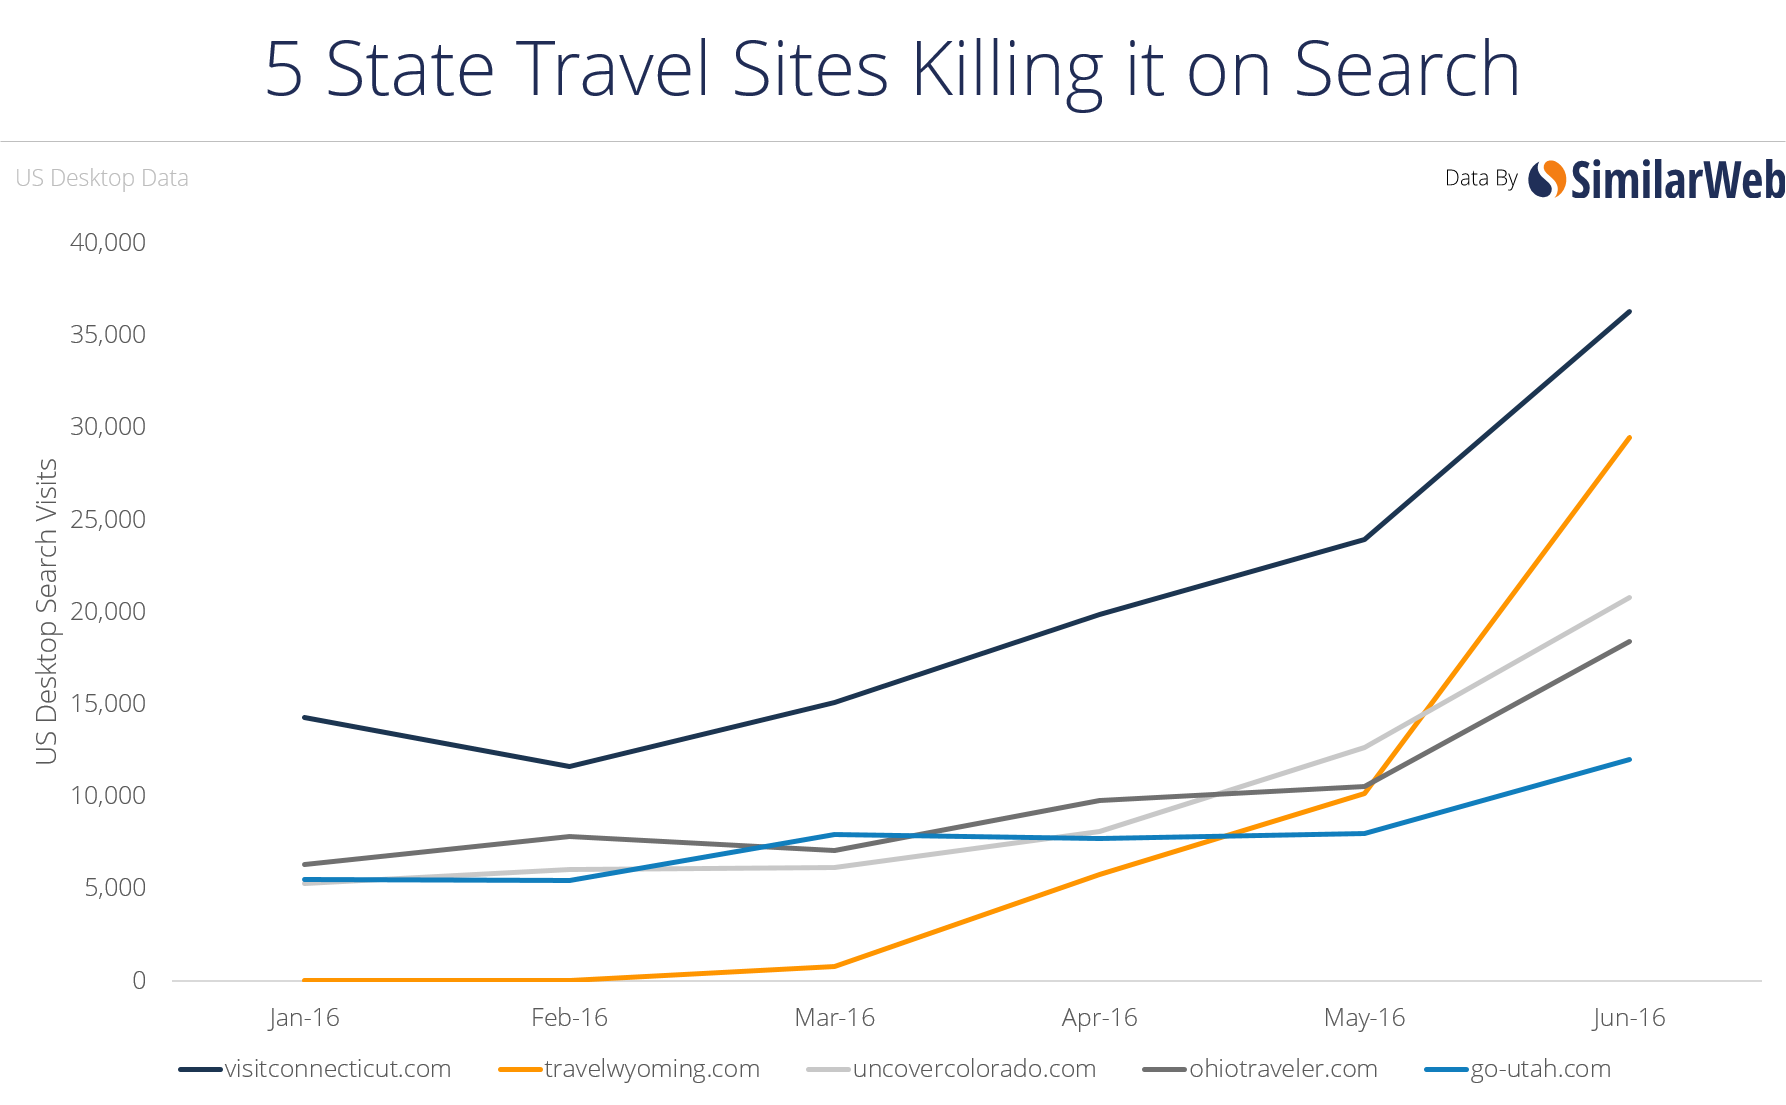 5 Booking Sites and 5 State Travel Sites Killing it on Search